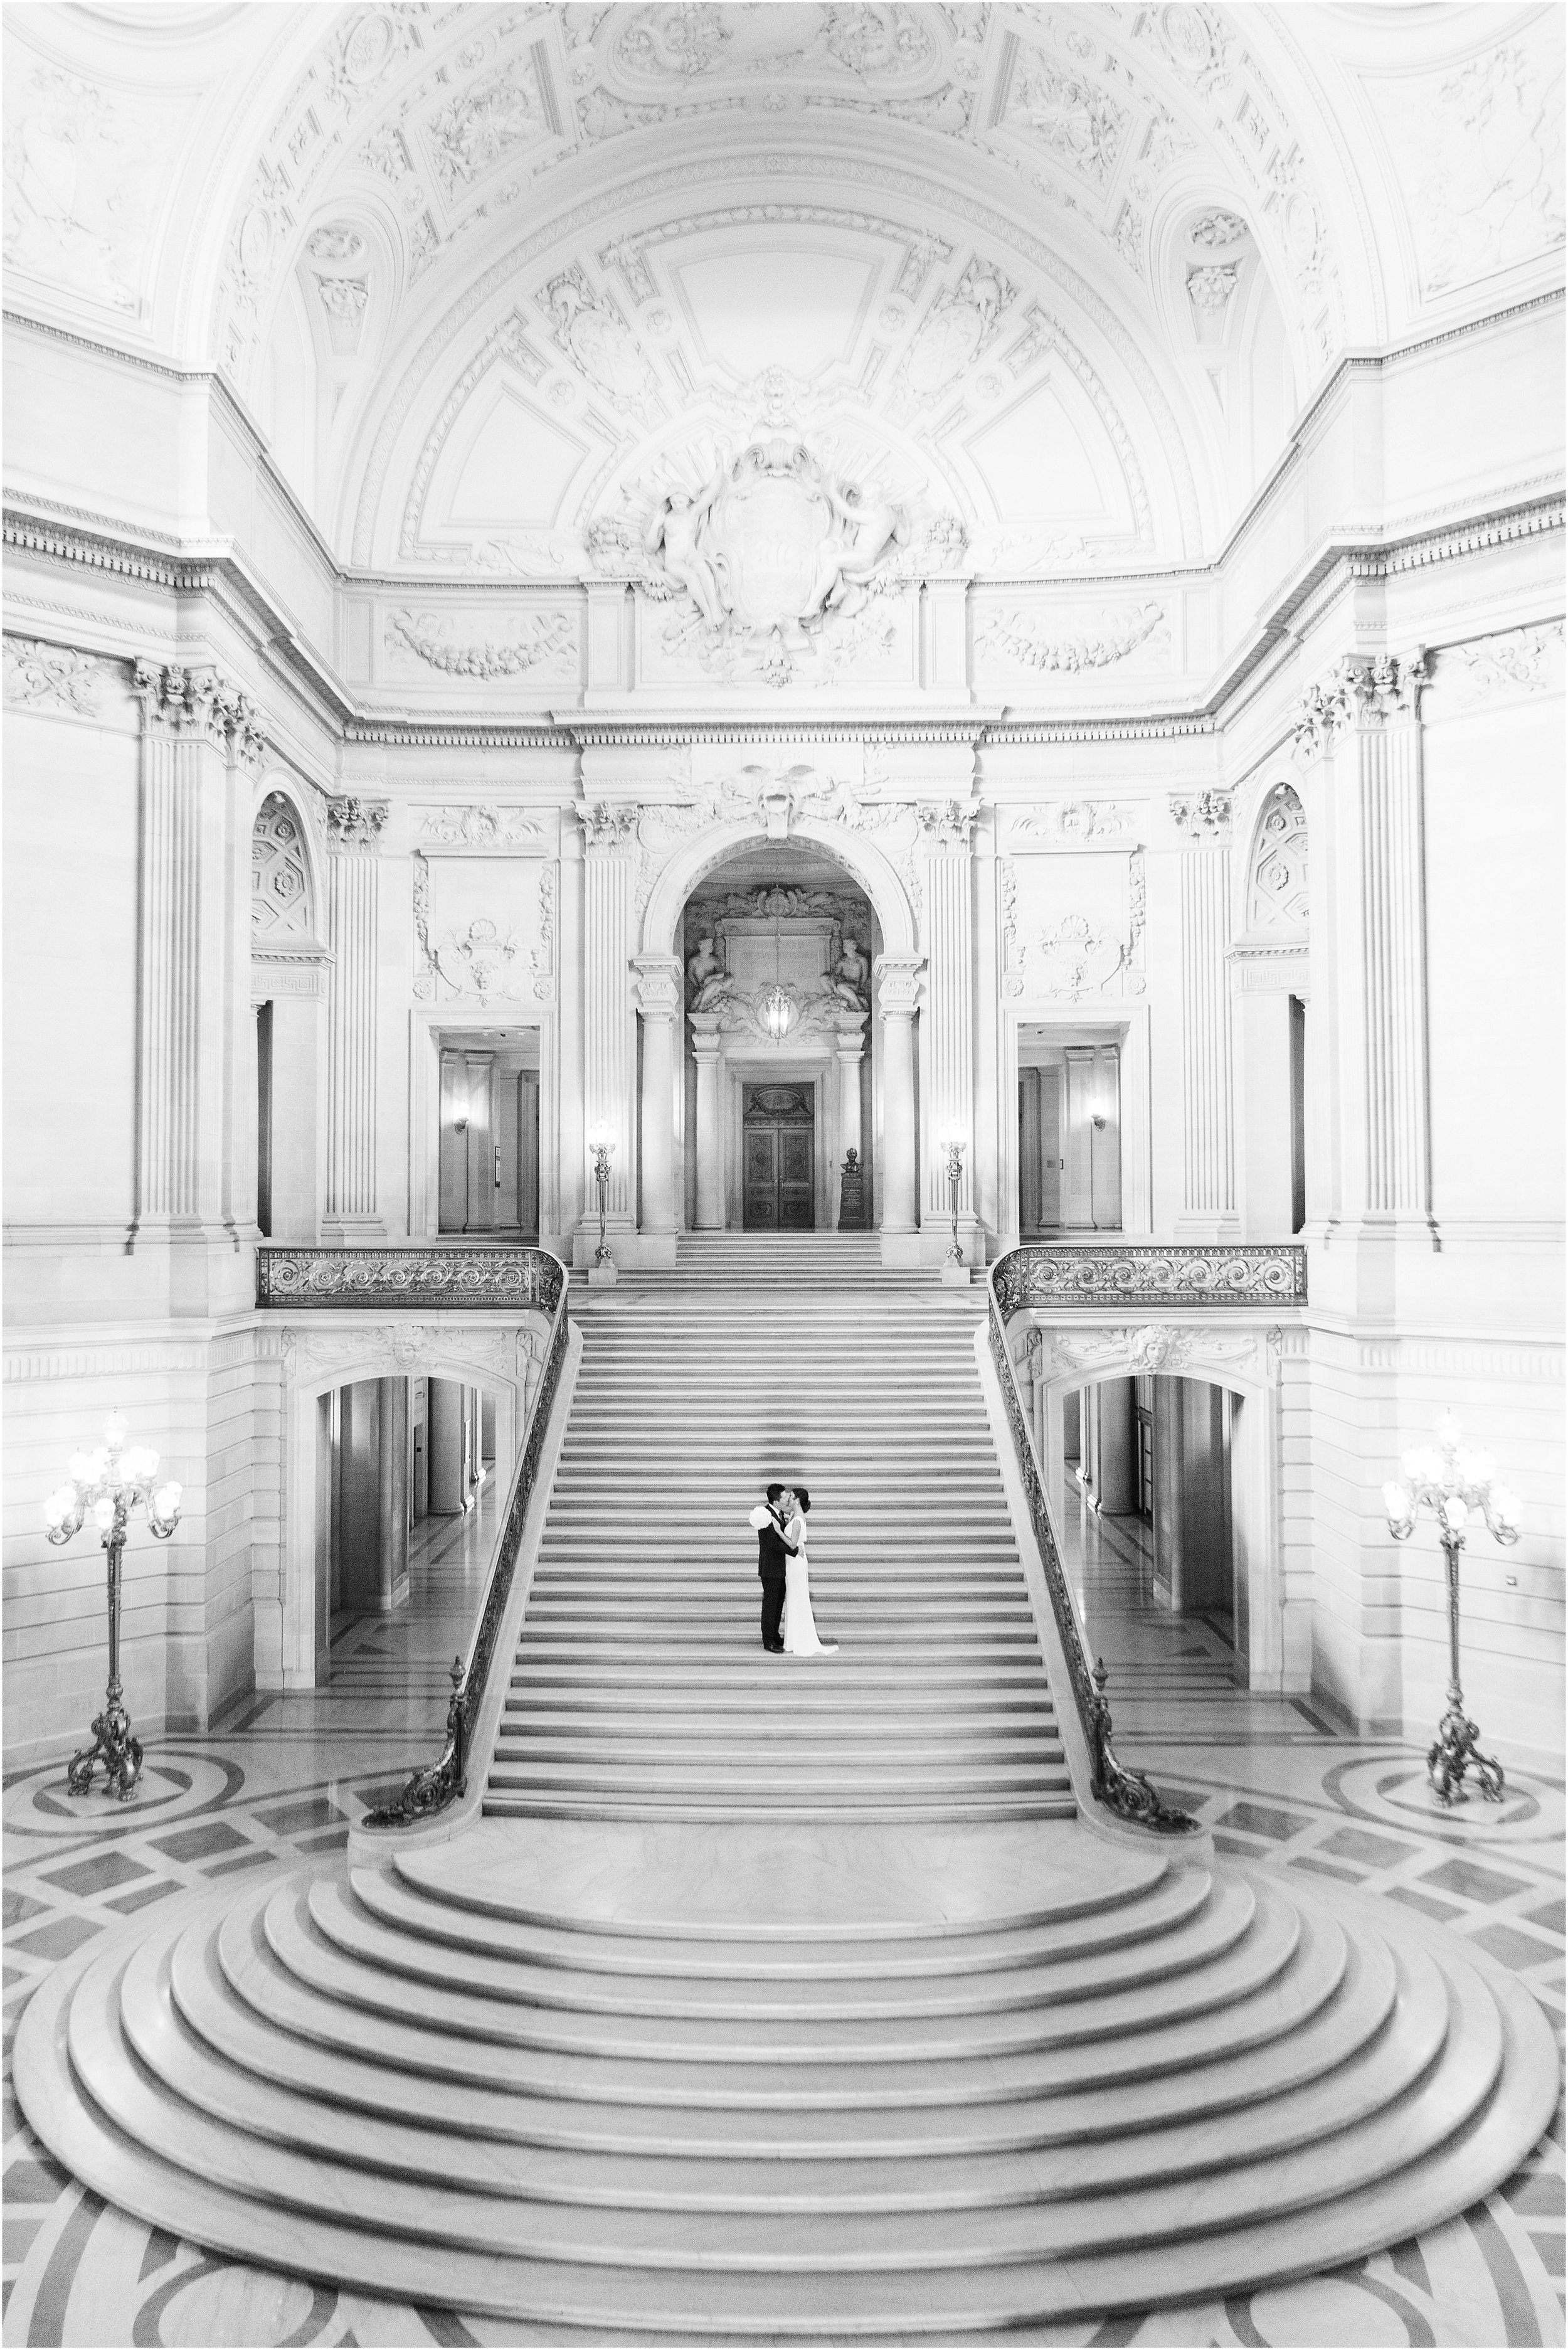 I met Aimee before photographing her wedding and we clicked instantly! I love when my clients and I share a similar vision and style because it makes everything fun and easy to plan! The day of their wedding, Aimee wore a beautiful wedding dress from BHLDN that suited her and San Francisco City Hall perfectly and I loved how elegant the low back looked on her. To top off the look, she wore a pair of stunning, sapphire,rhinestone encrusted Badgley Mischka's. Talk about a fabulous pair of shoes!   Their private, fourth floor ceremony was a perfect retreat from the rest of the bustling San Francisco City Hall. It allowed for an intimate hour with their friends, family, and the cutest little ring bearer, their son Nathan!  Congratulations Aimme and Michael! I am so happy to have met you and to be able to call you two new friends is an honor!